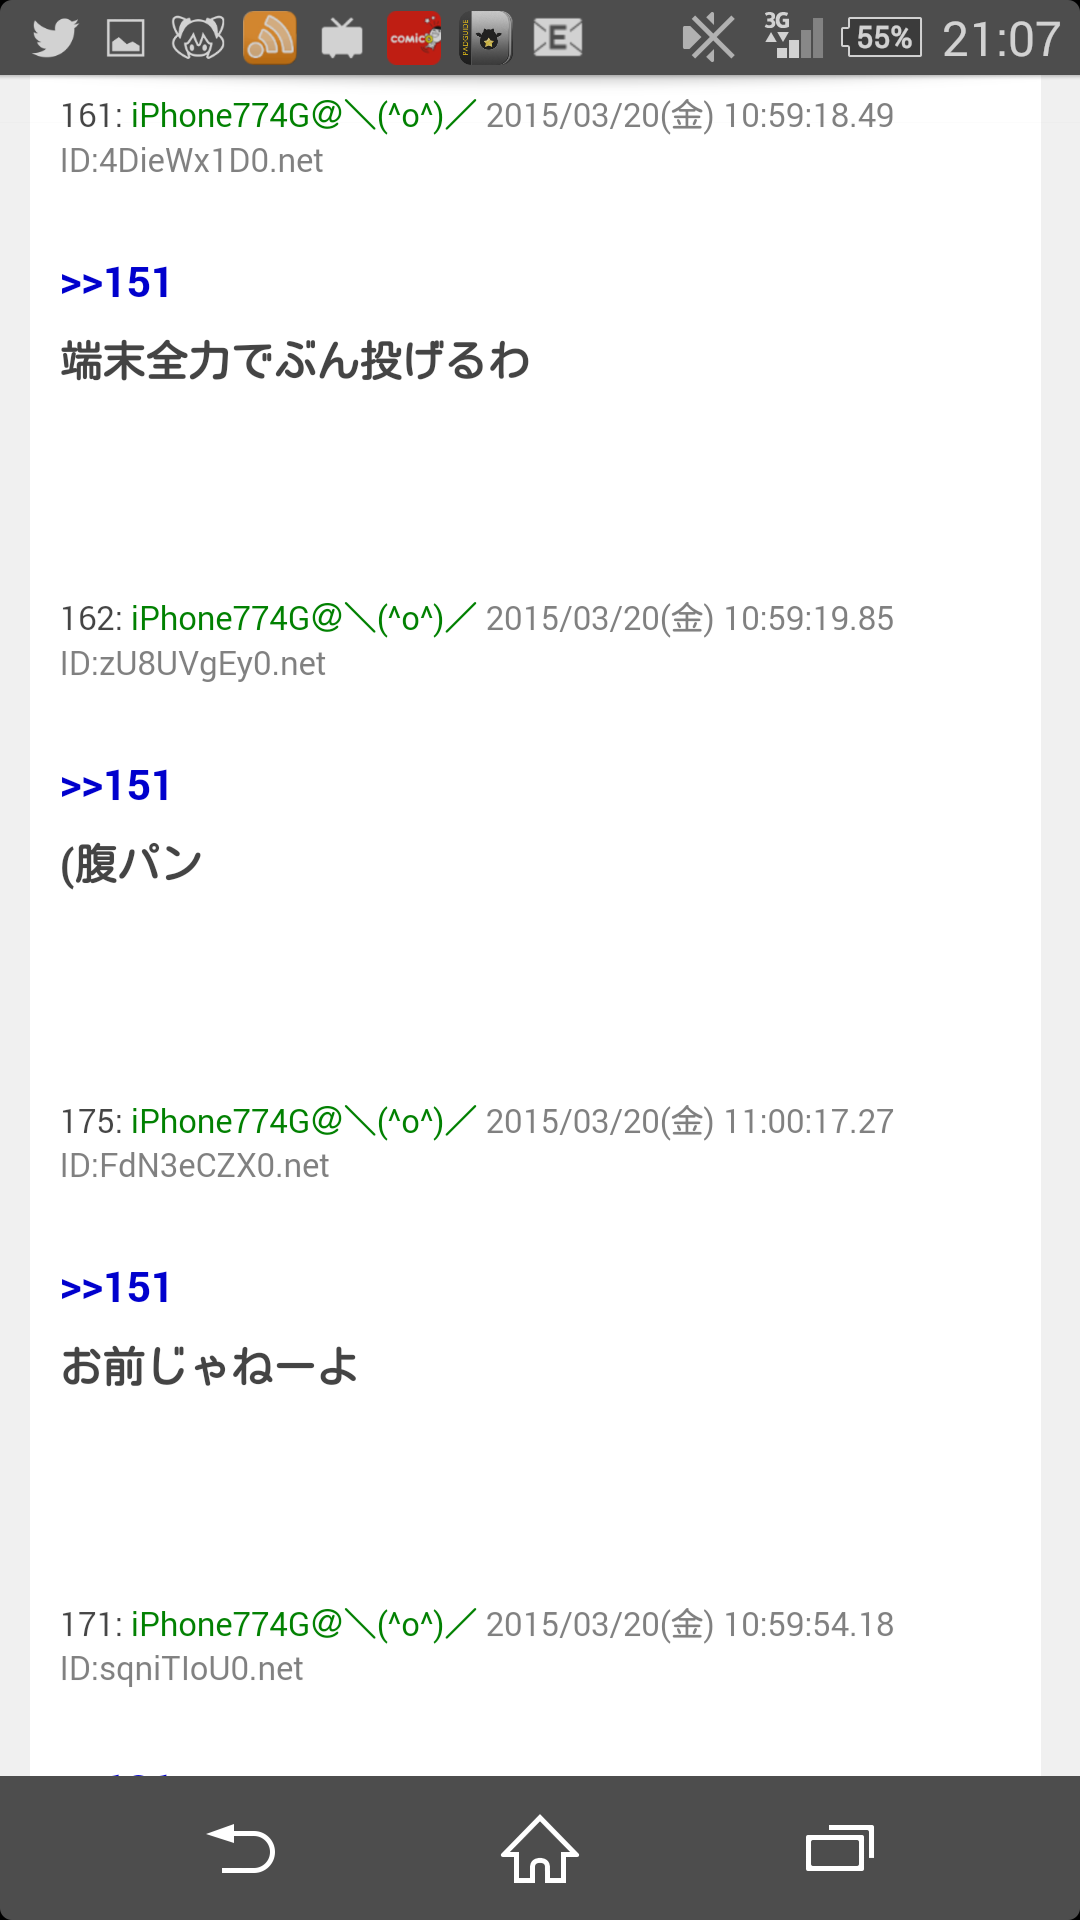 Screenshot_2015-03-22-21-07-10.png